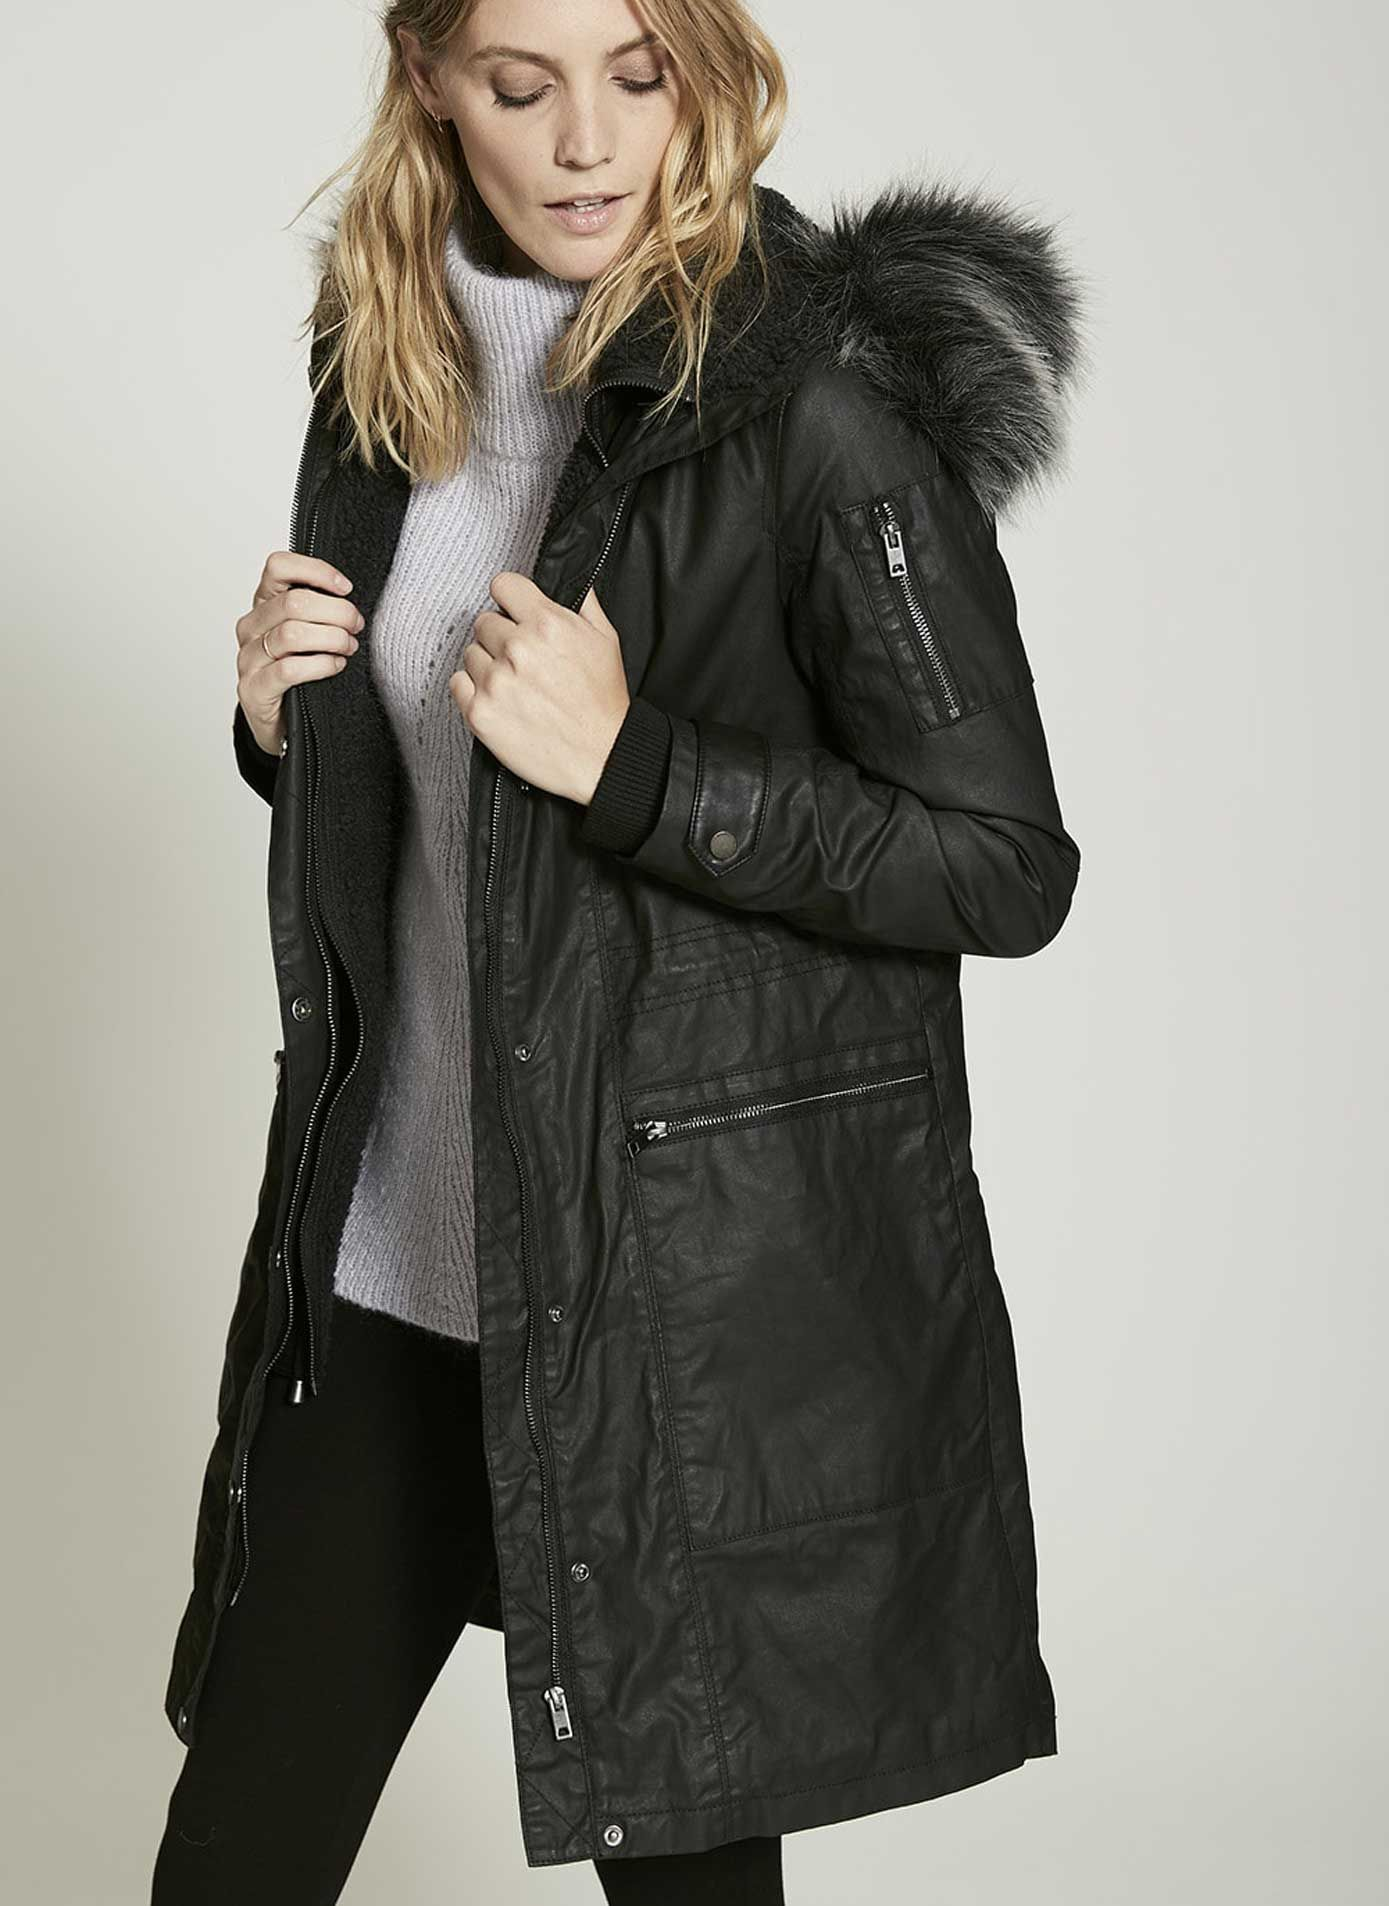 Washed Black Waxed Parka | Parka, Wax and Parka coat